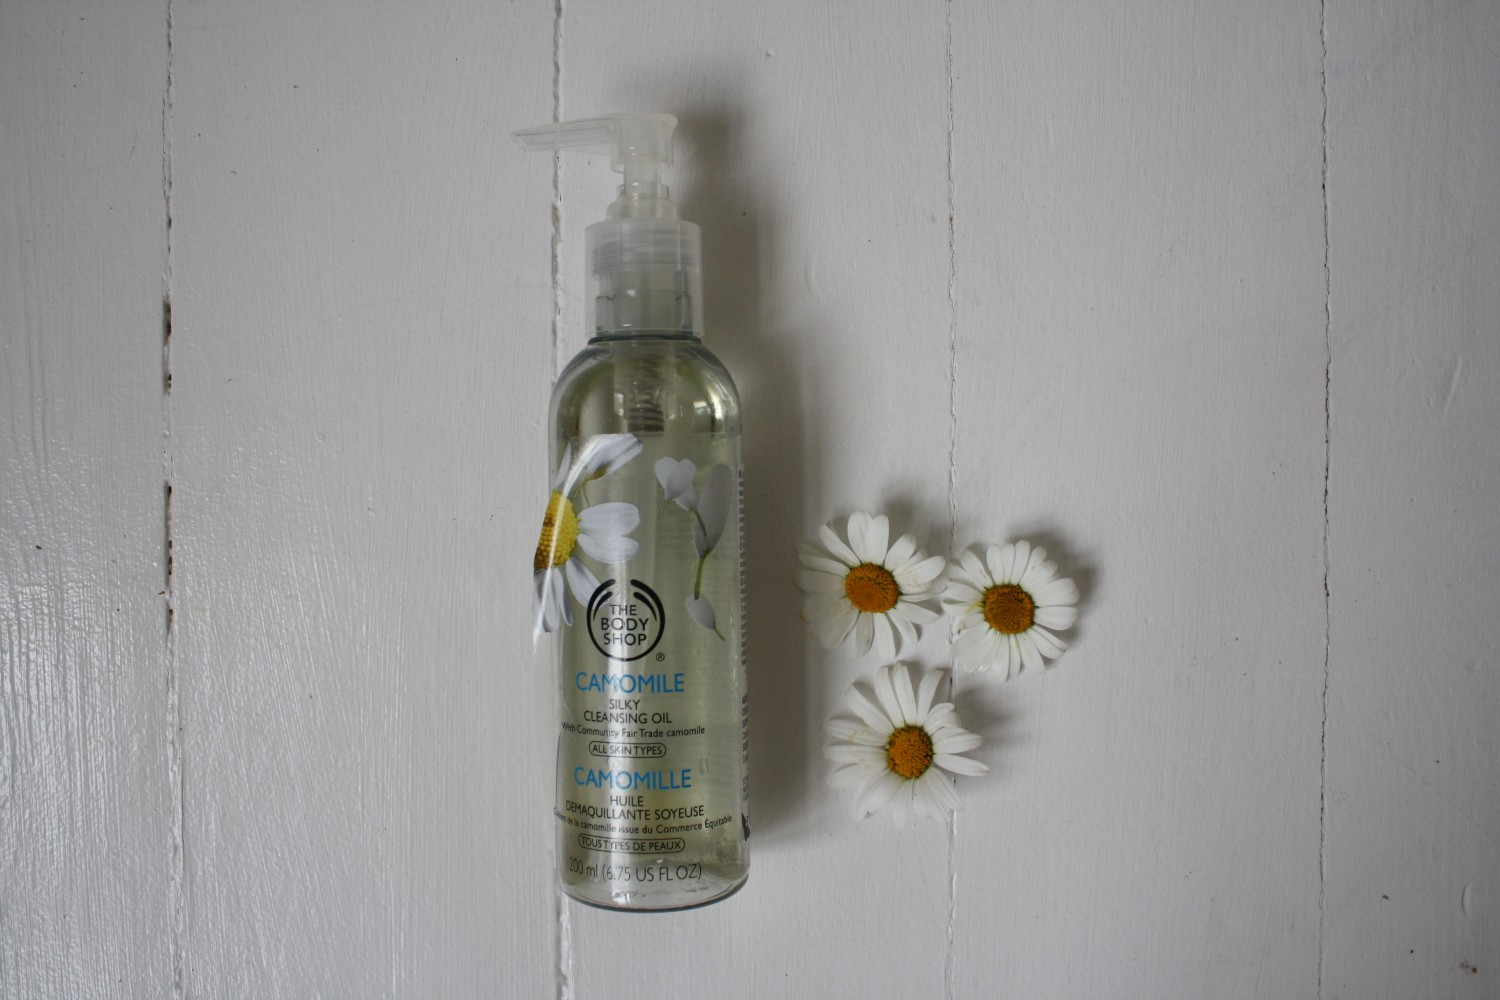 renseolie the body shop camomile silky cleansing oil